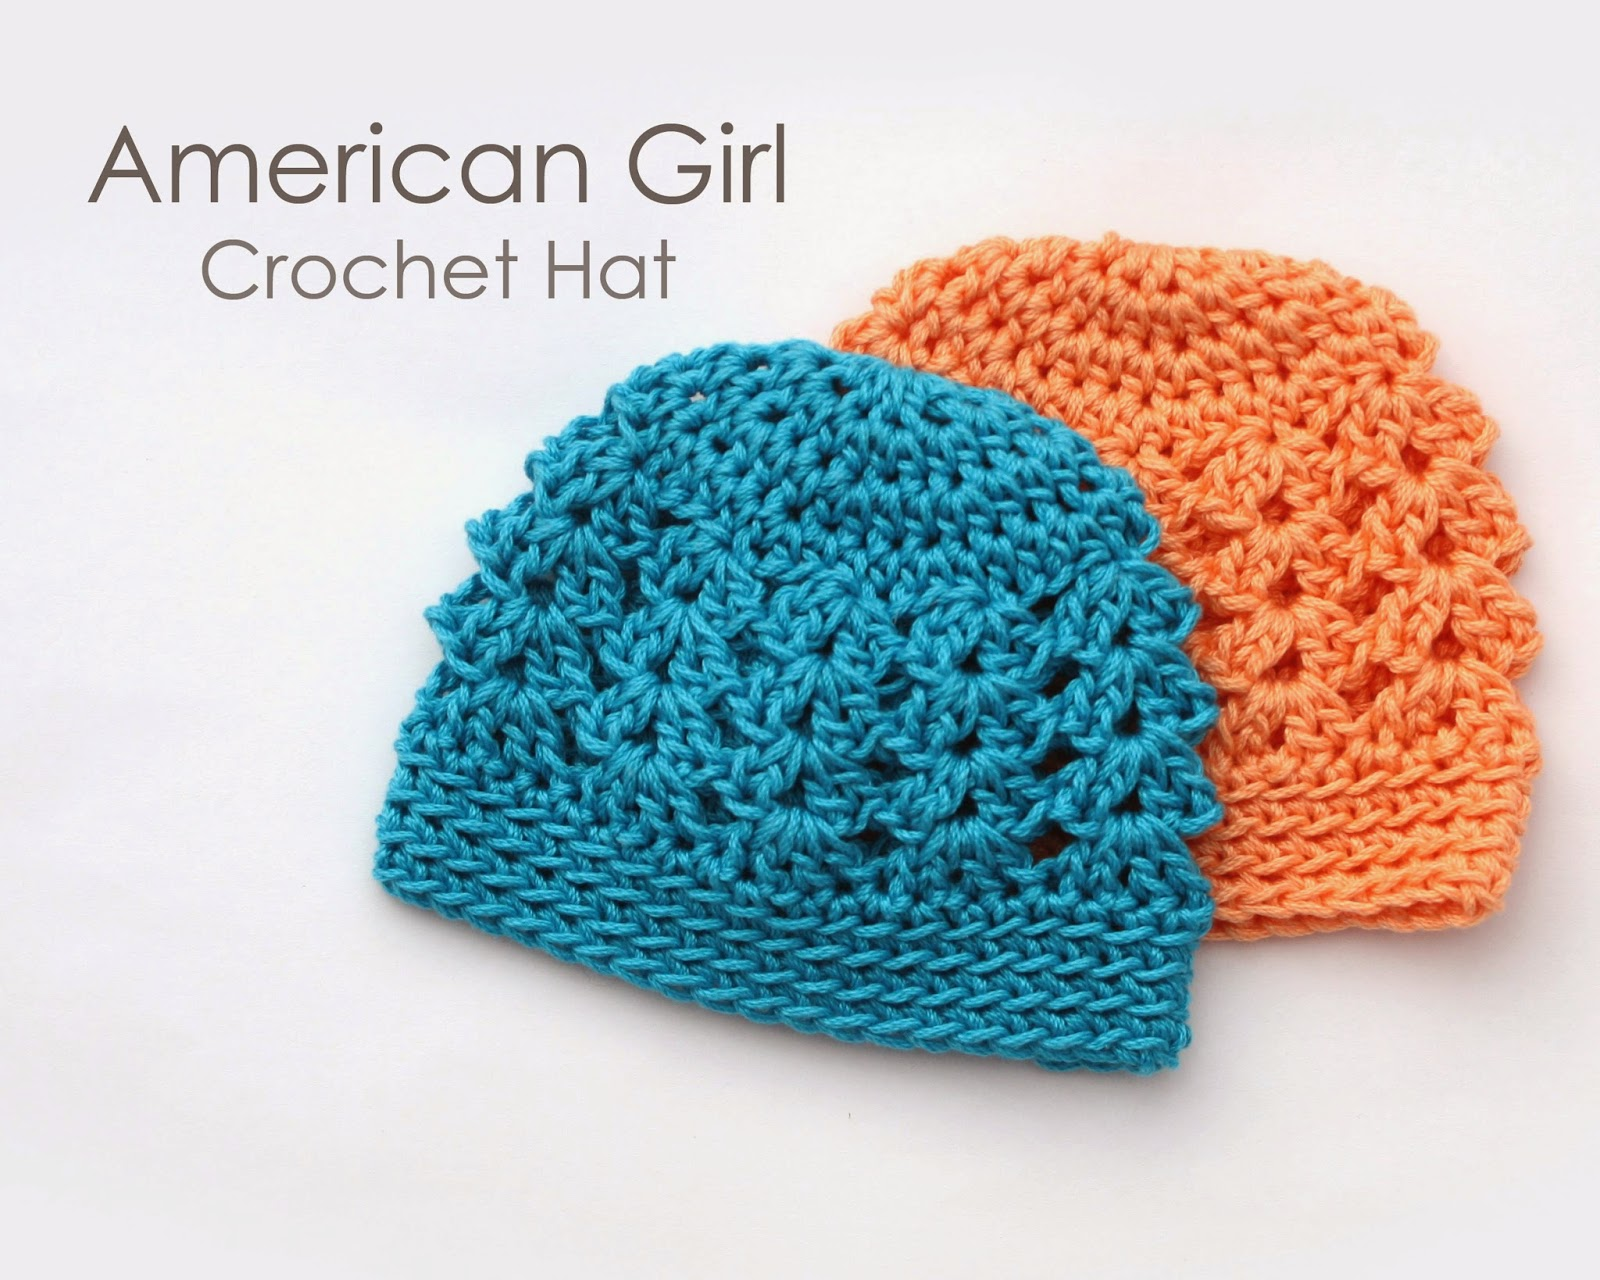 TUTORIAL: American Girl Crochet Hat